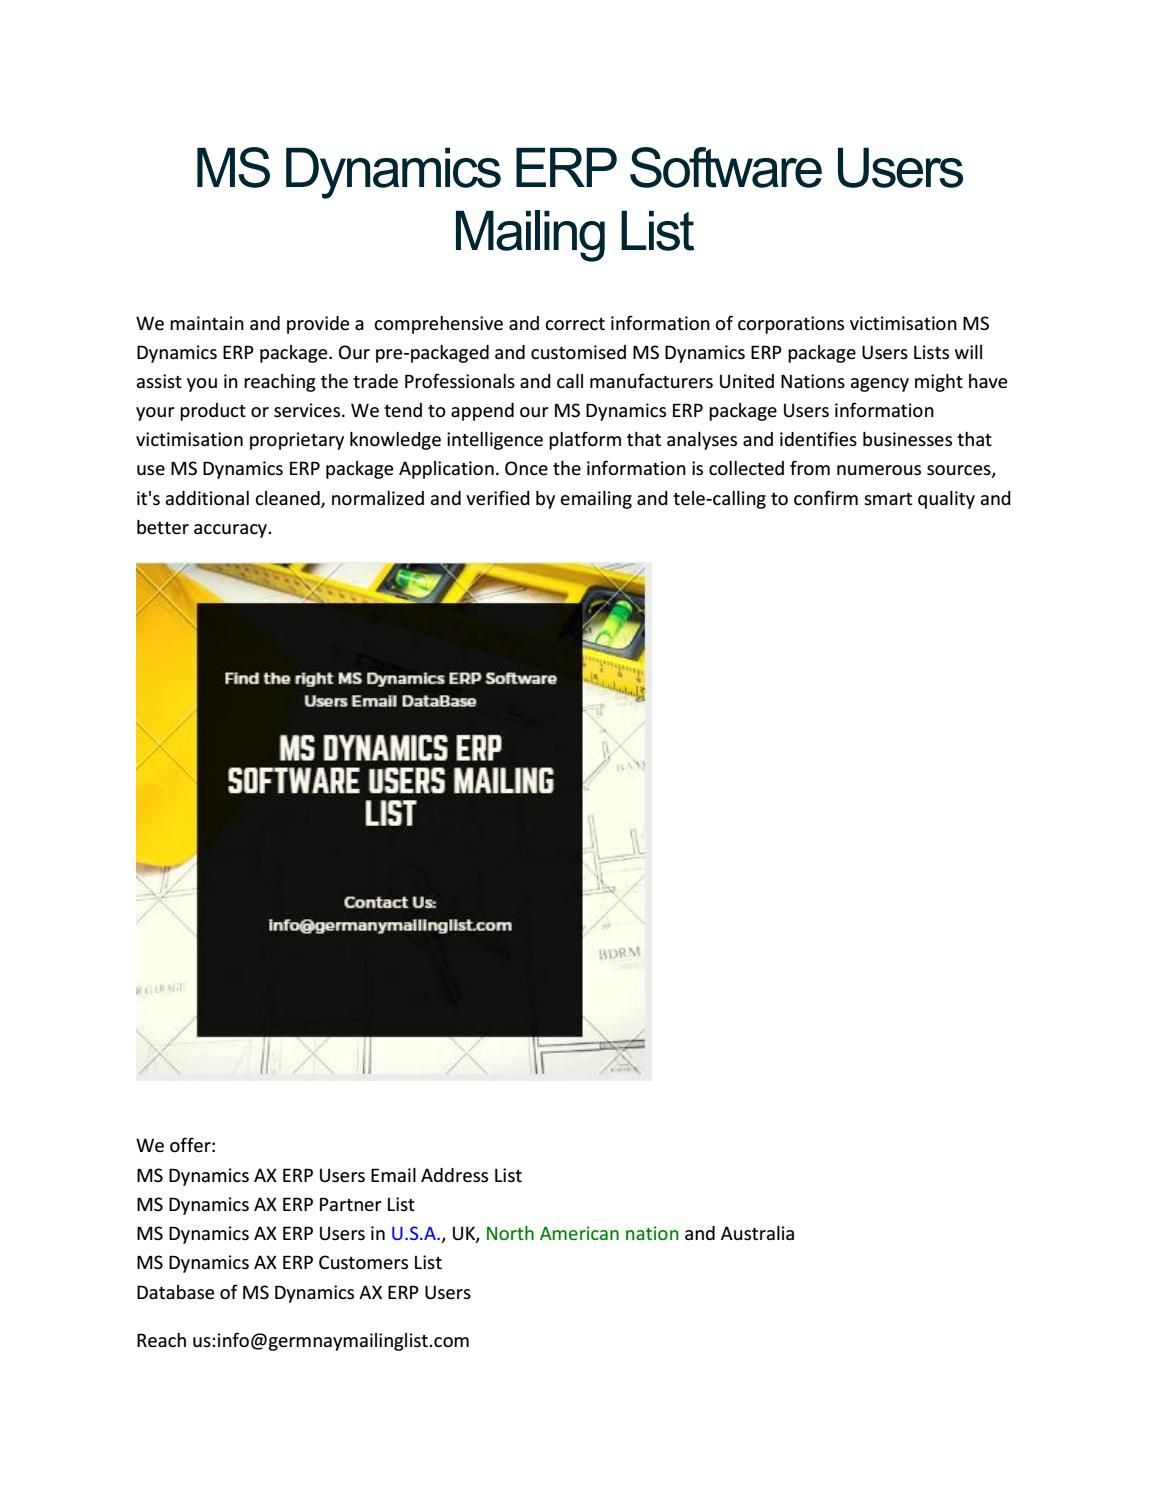 Ms dynamics erp software users mailing list Software